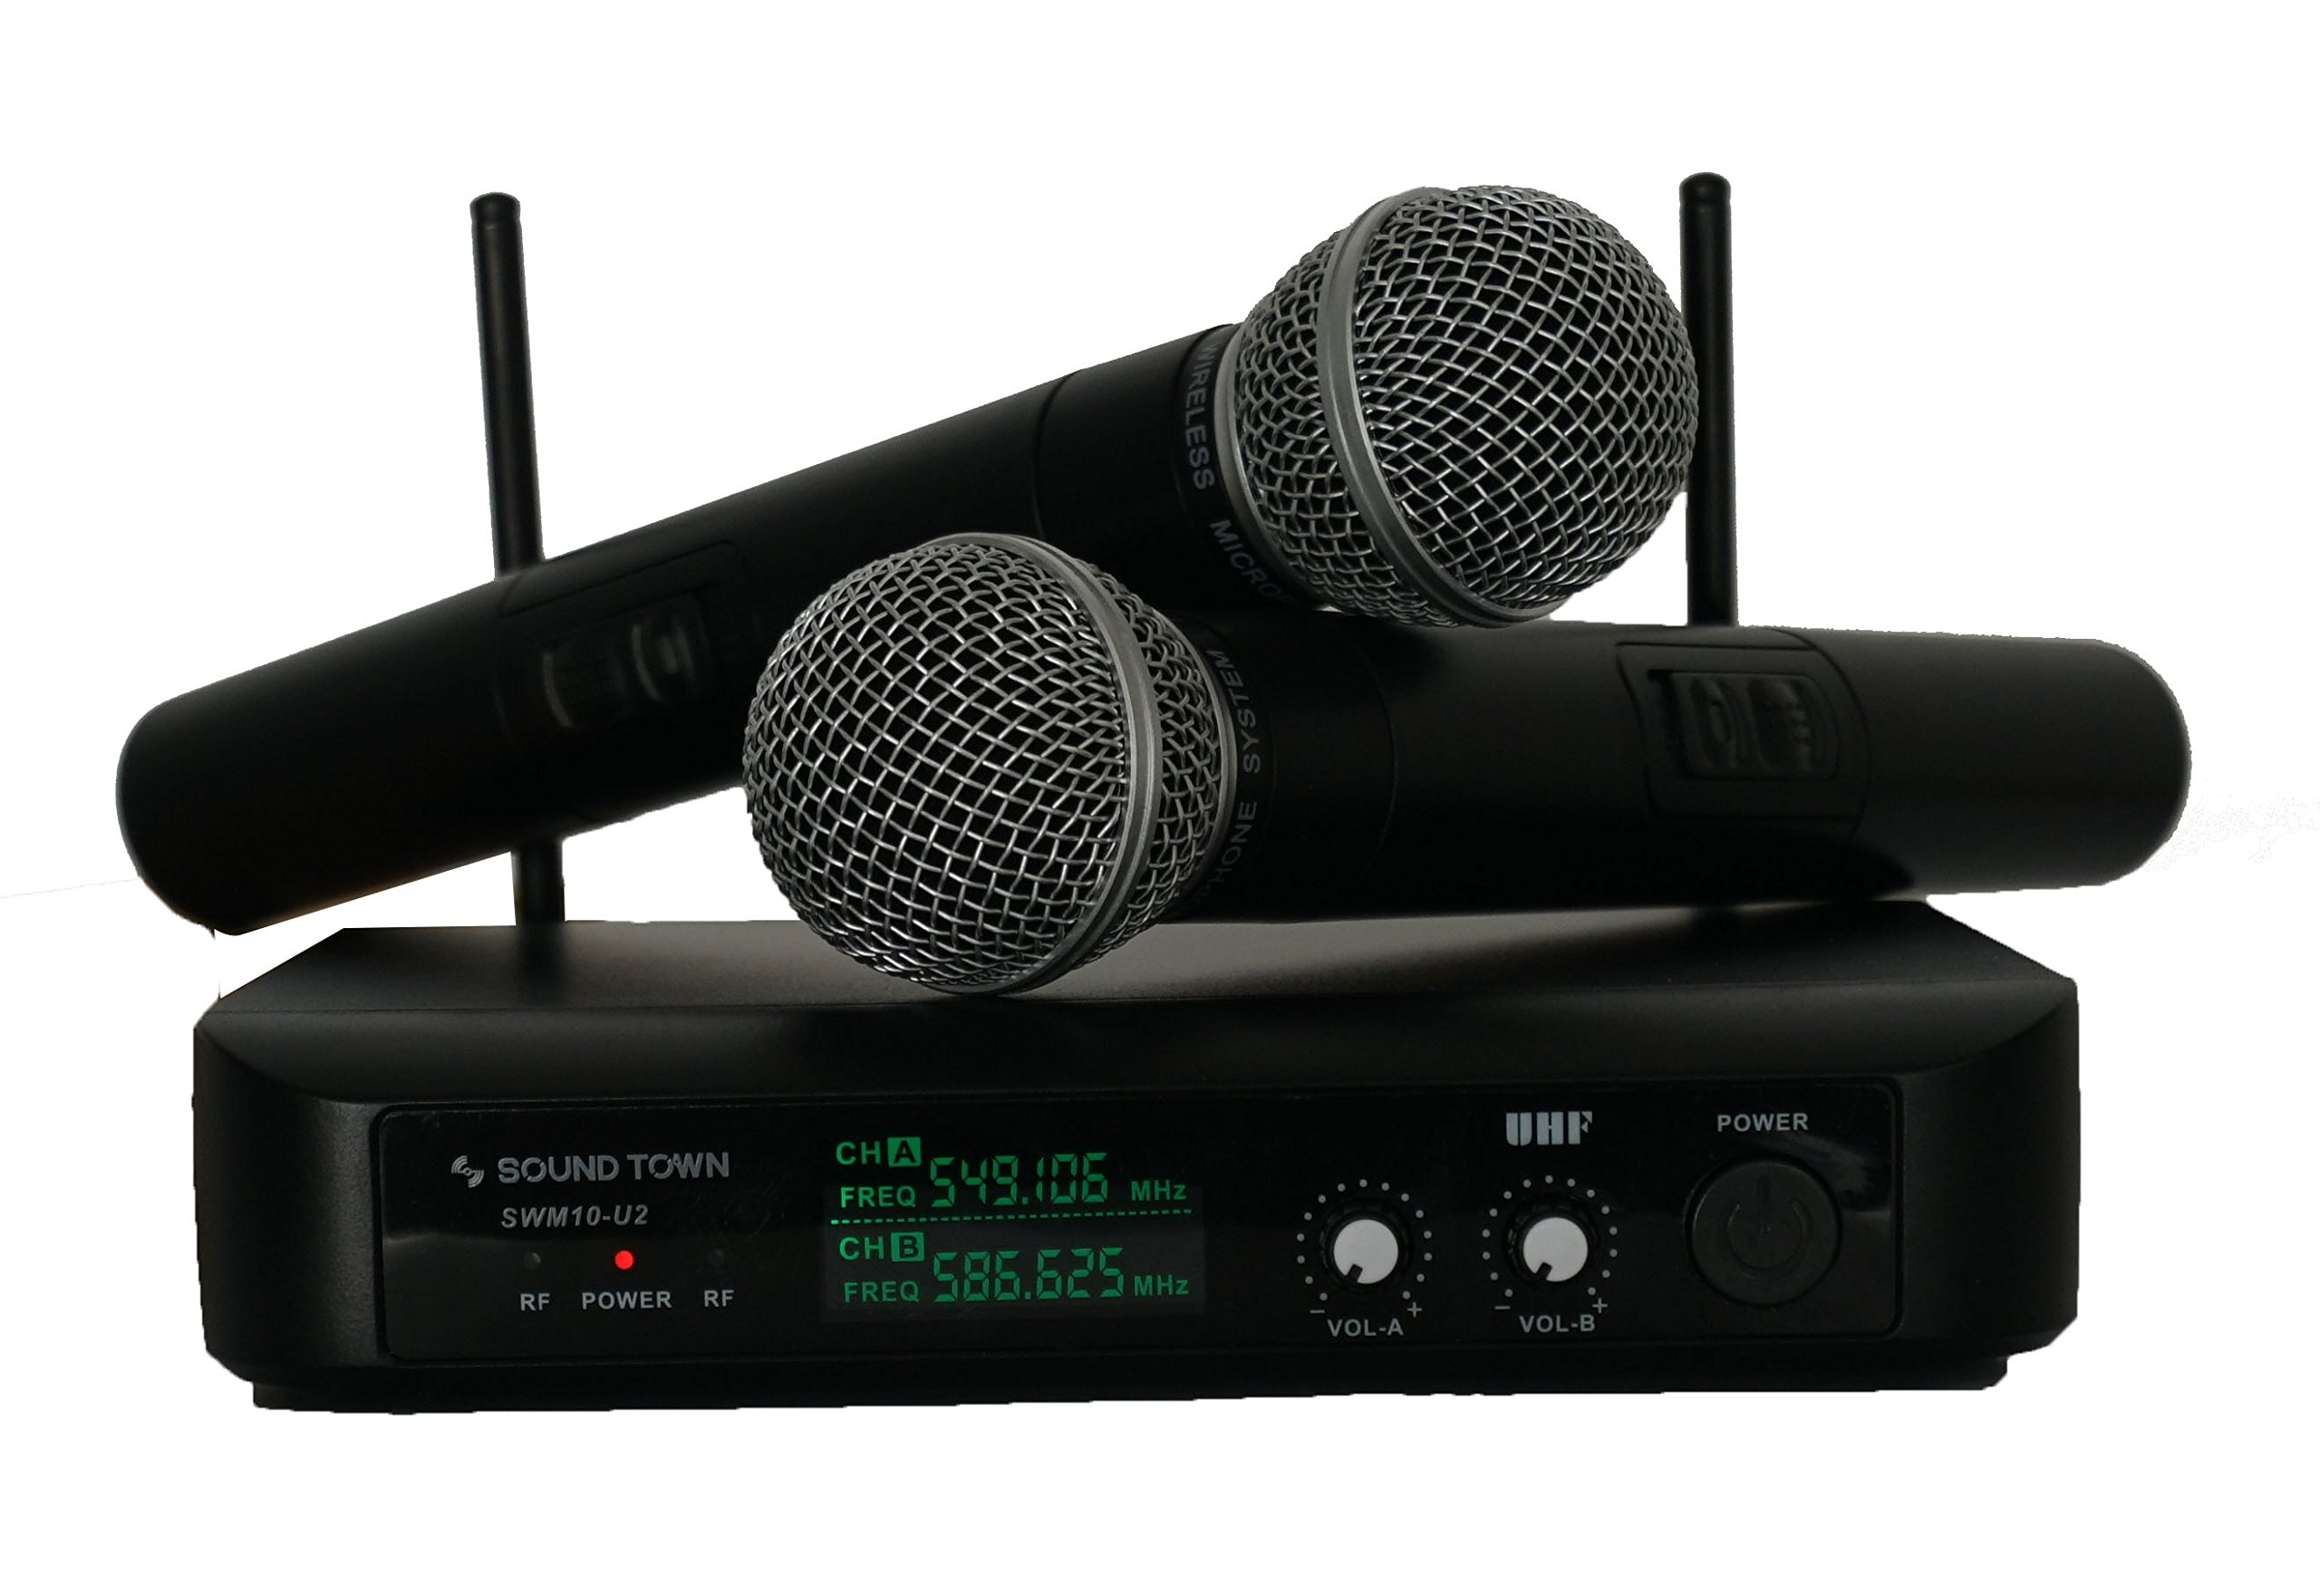 Sound Town Professional Dual-Channel UHF Handheld Wireless Microphone System with LED Display, 2 Handheld Mics (SWM10-U2HH)